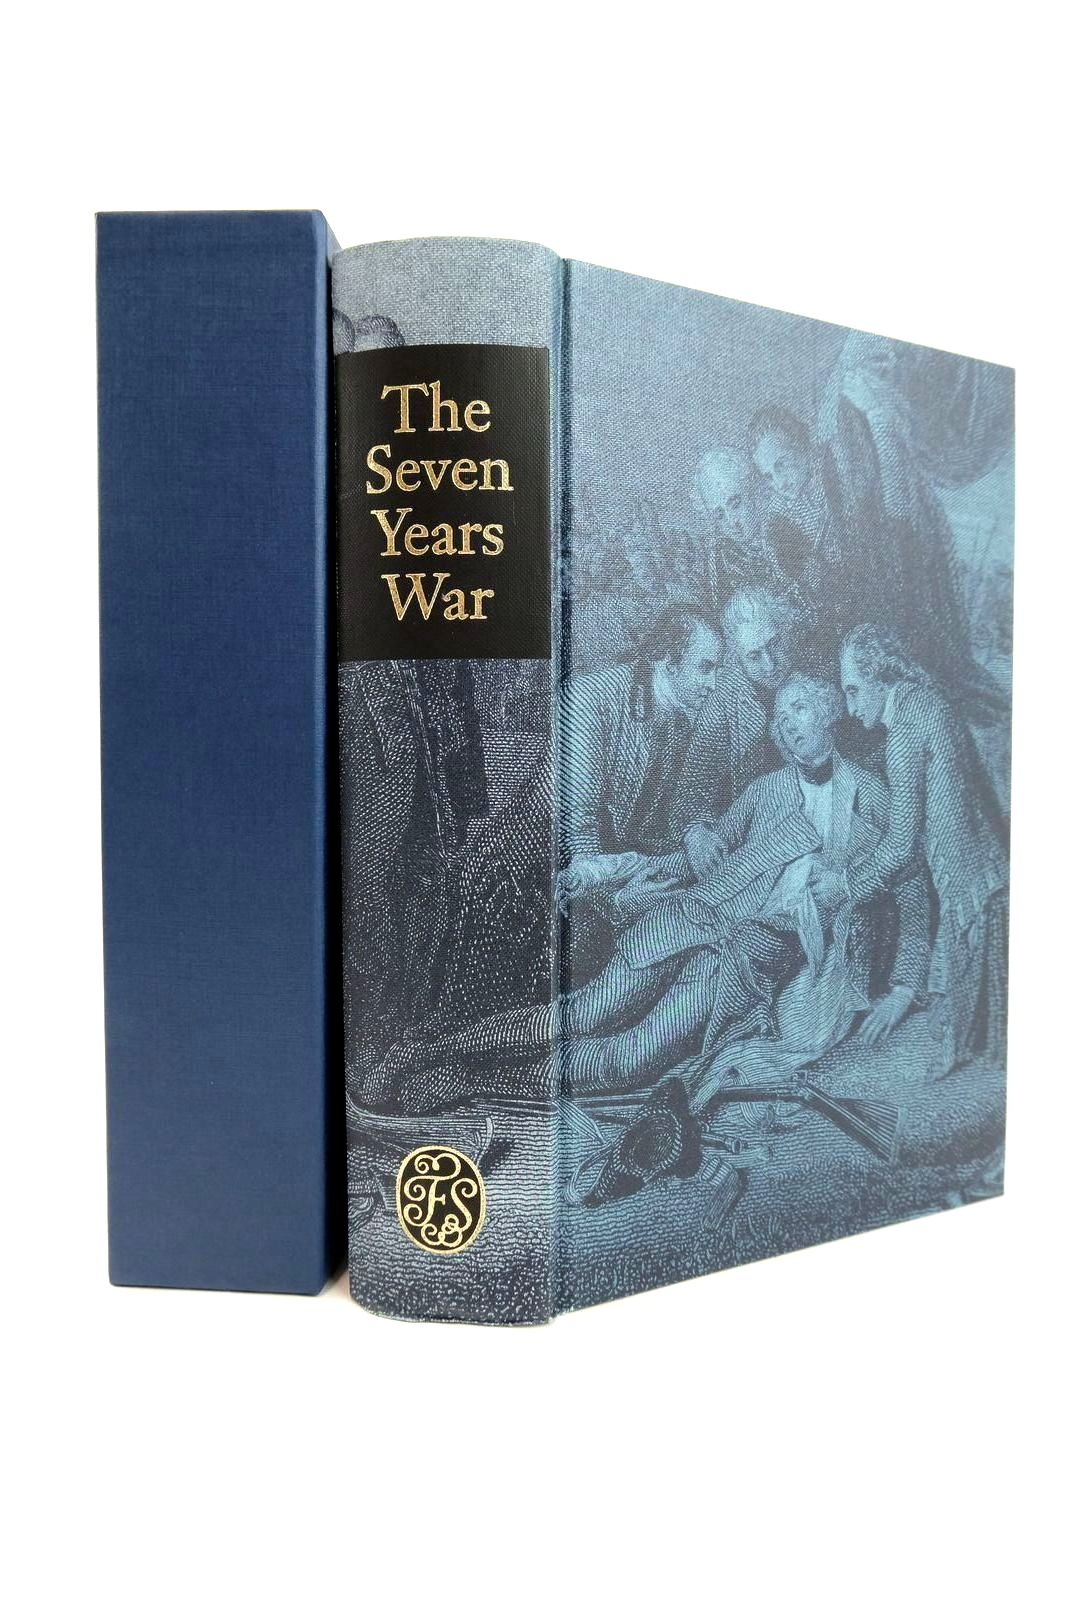 Photo of THE SEVEN YEARS WAR written by Corbett, Julian S. published by Folio Society (STOCK CODE: 2133167)  for sale by Stella & Rose's Books